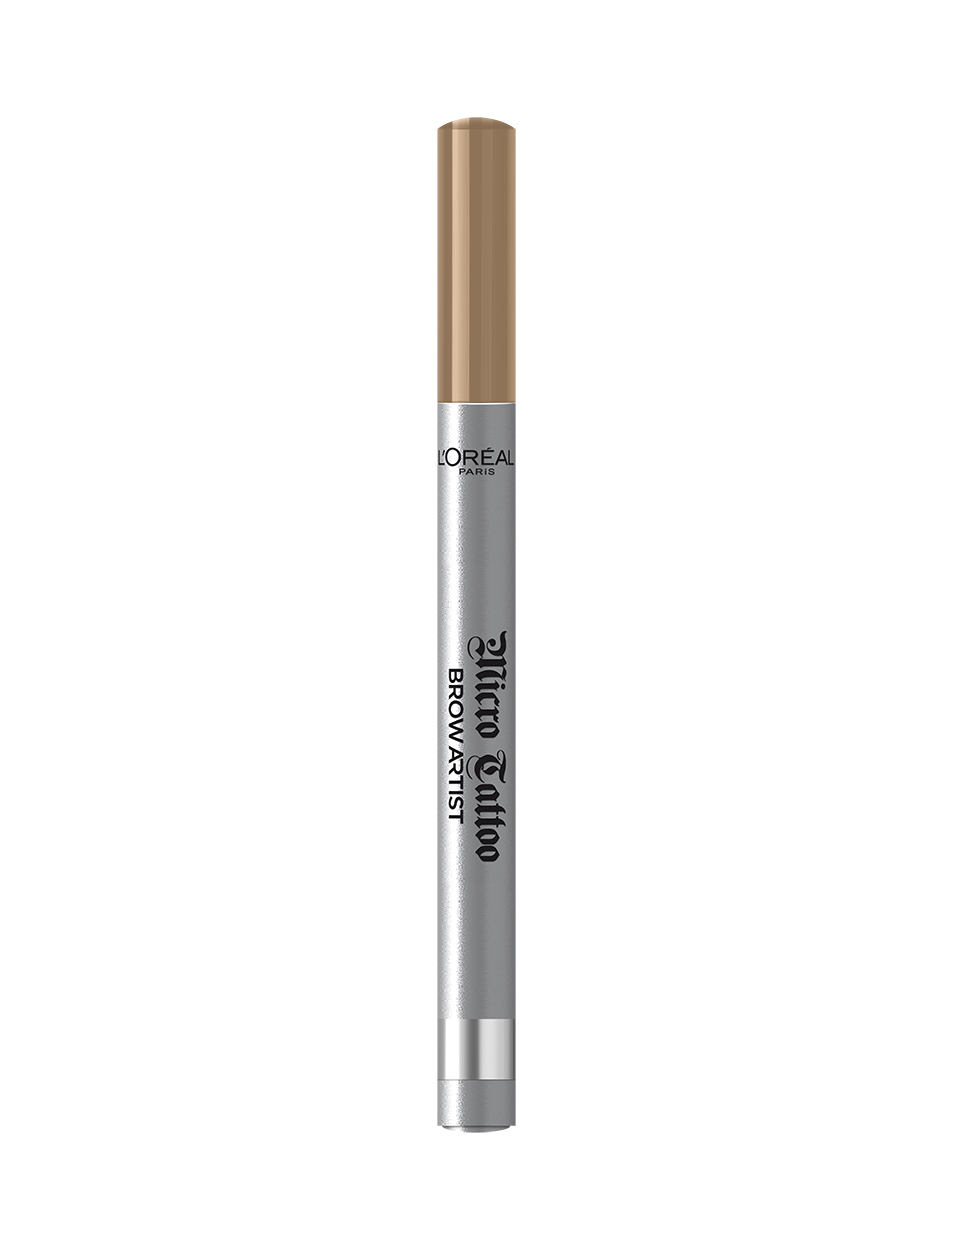 L'Oreal Brow Artist Micro Tattoo 24HR Eyebrow Definer - CHOICE OF SHADES